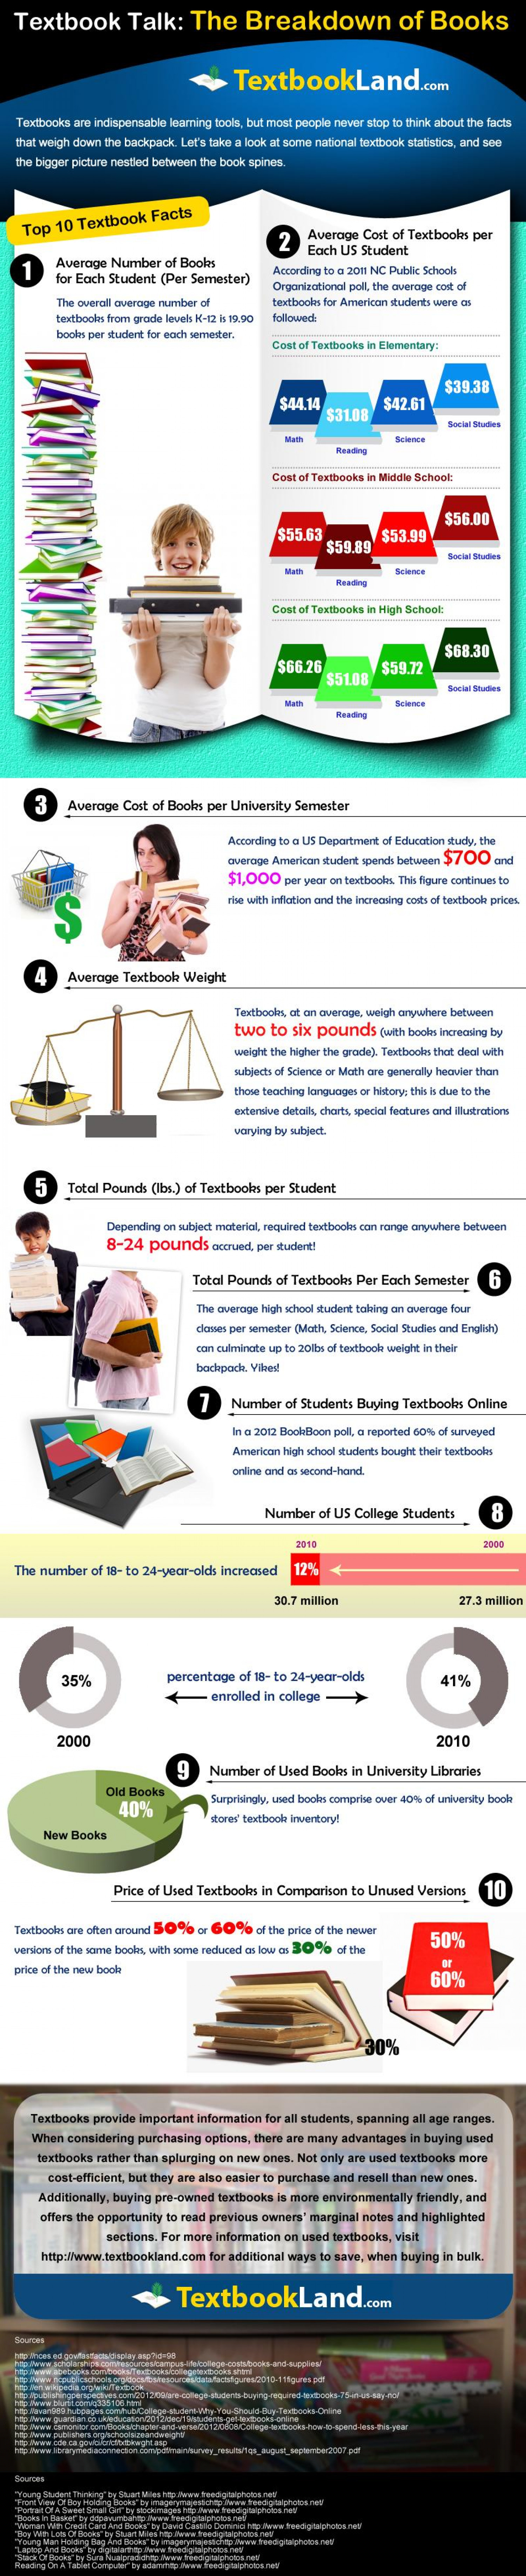 Textbook Talk Infographic